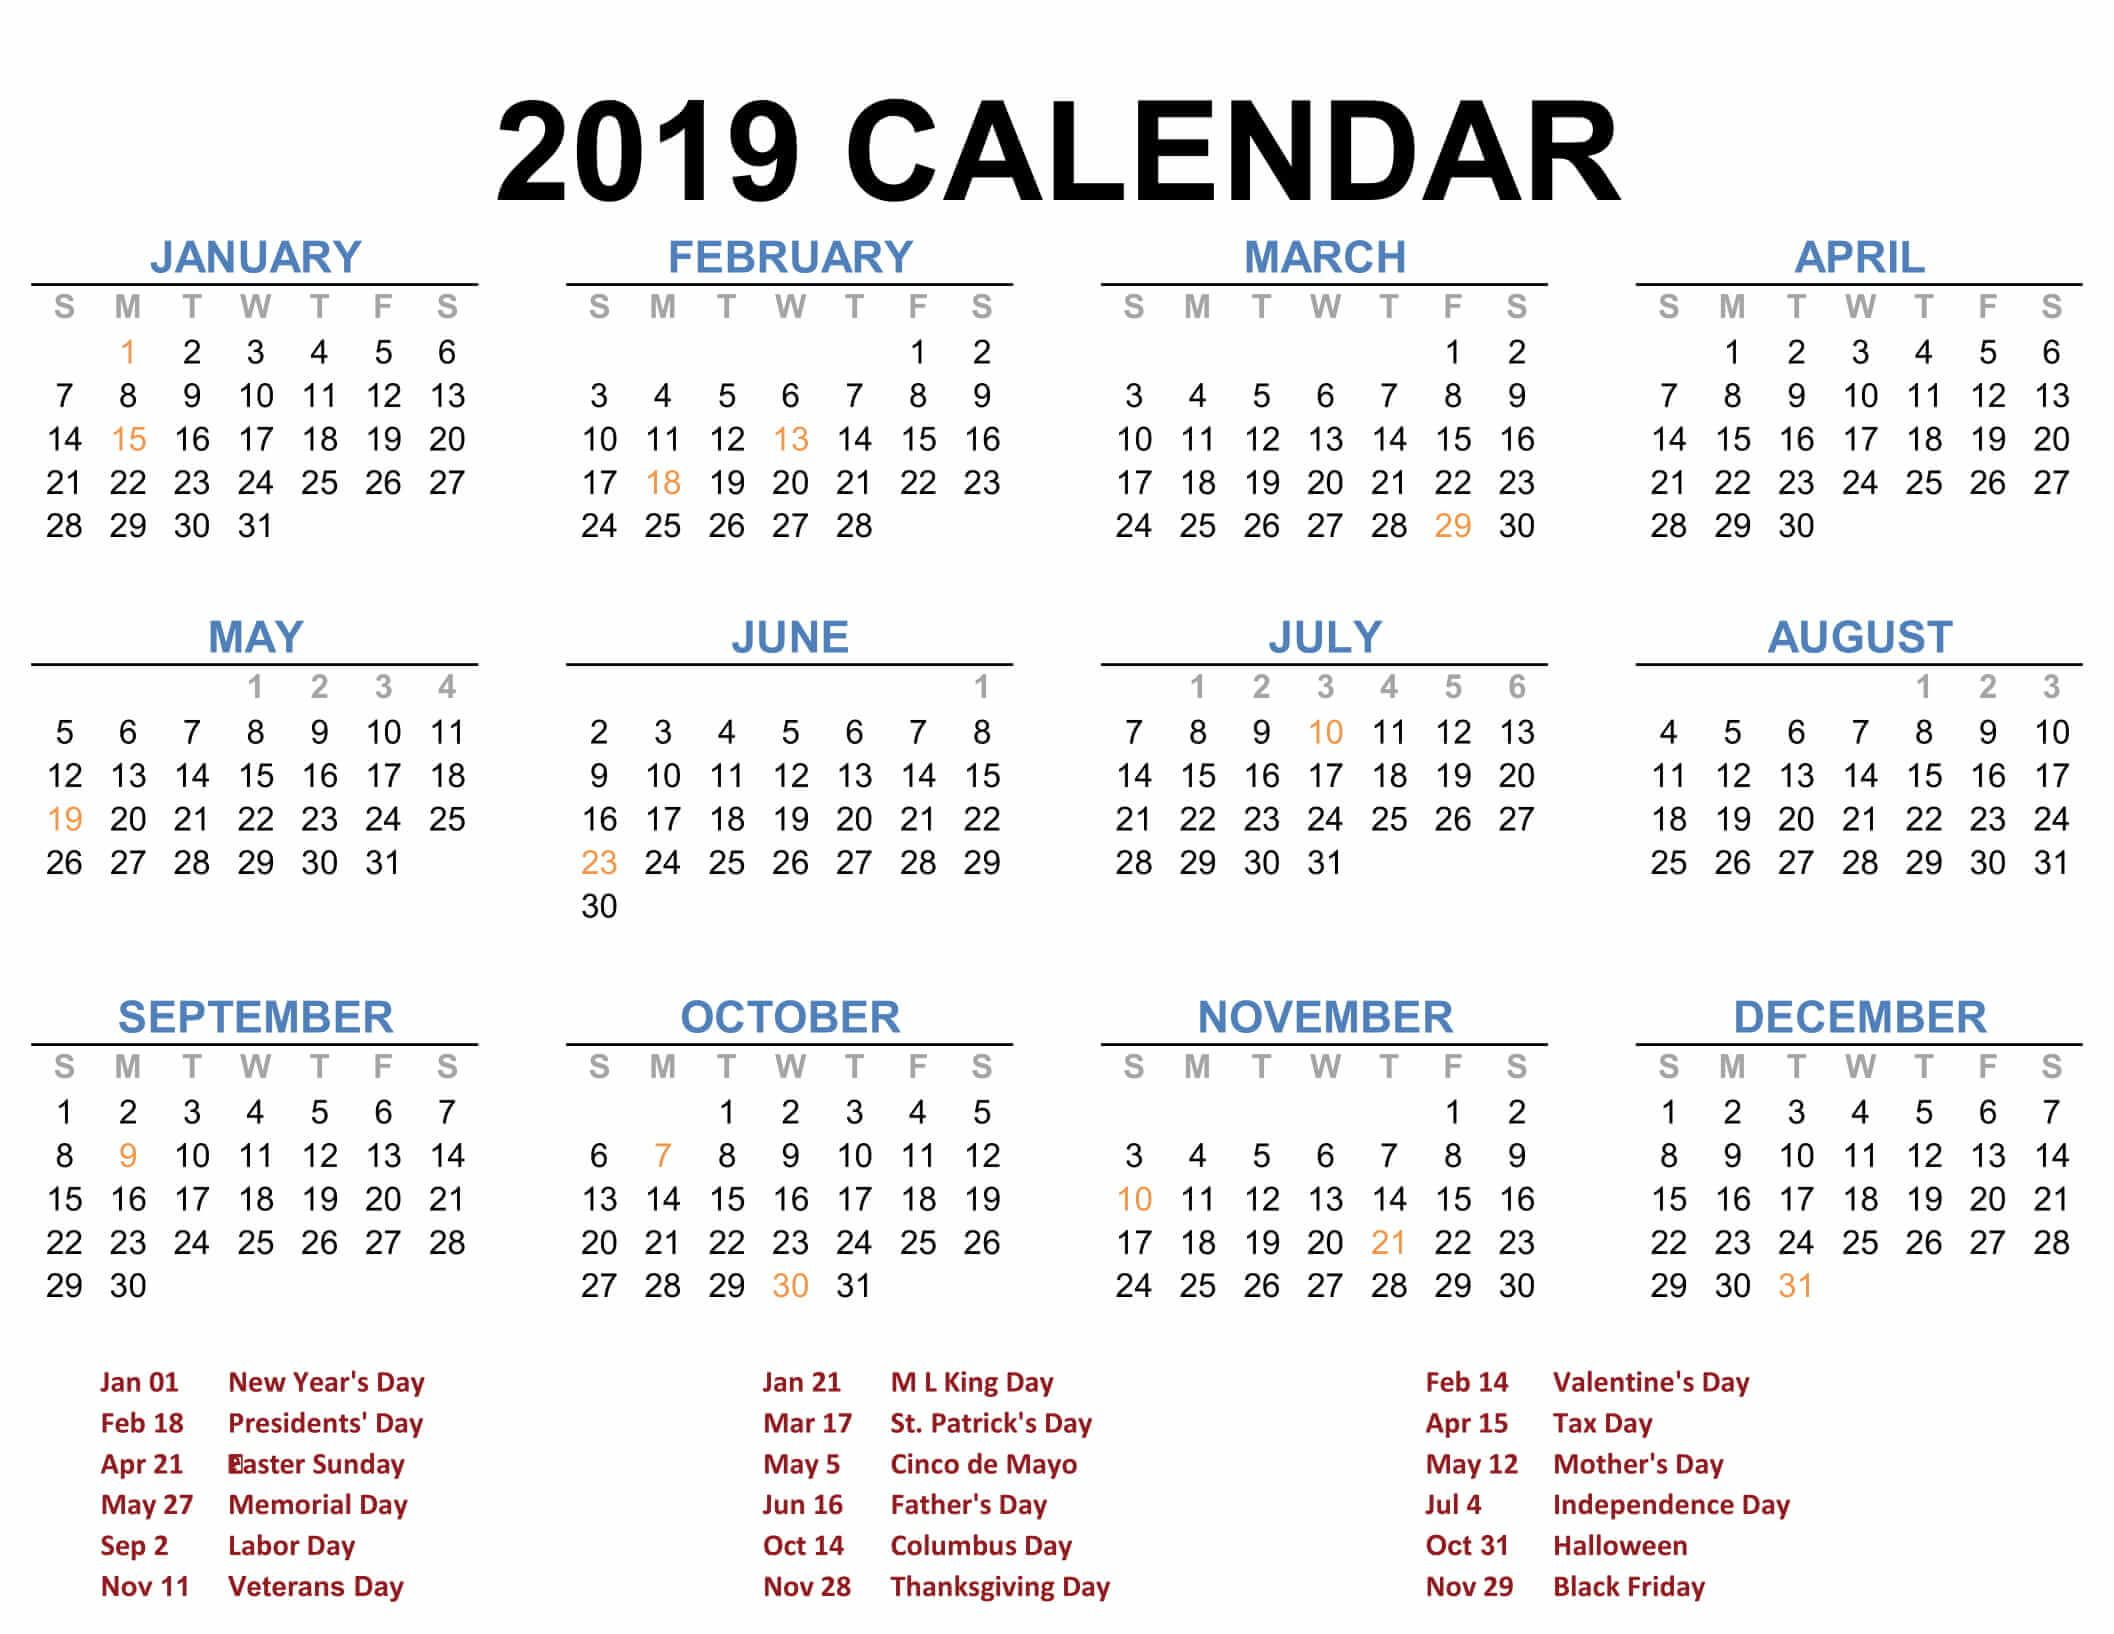 Day Of Year Calendar 2019 With Labor Printable Coloring Page For Kids